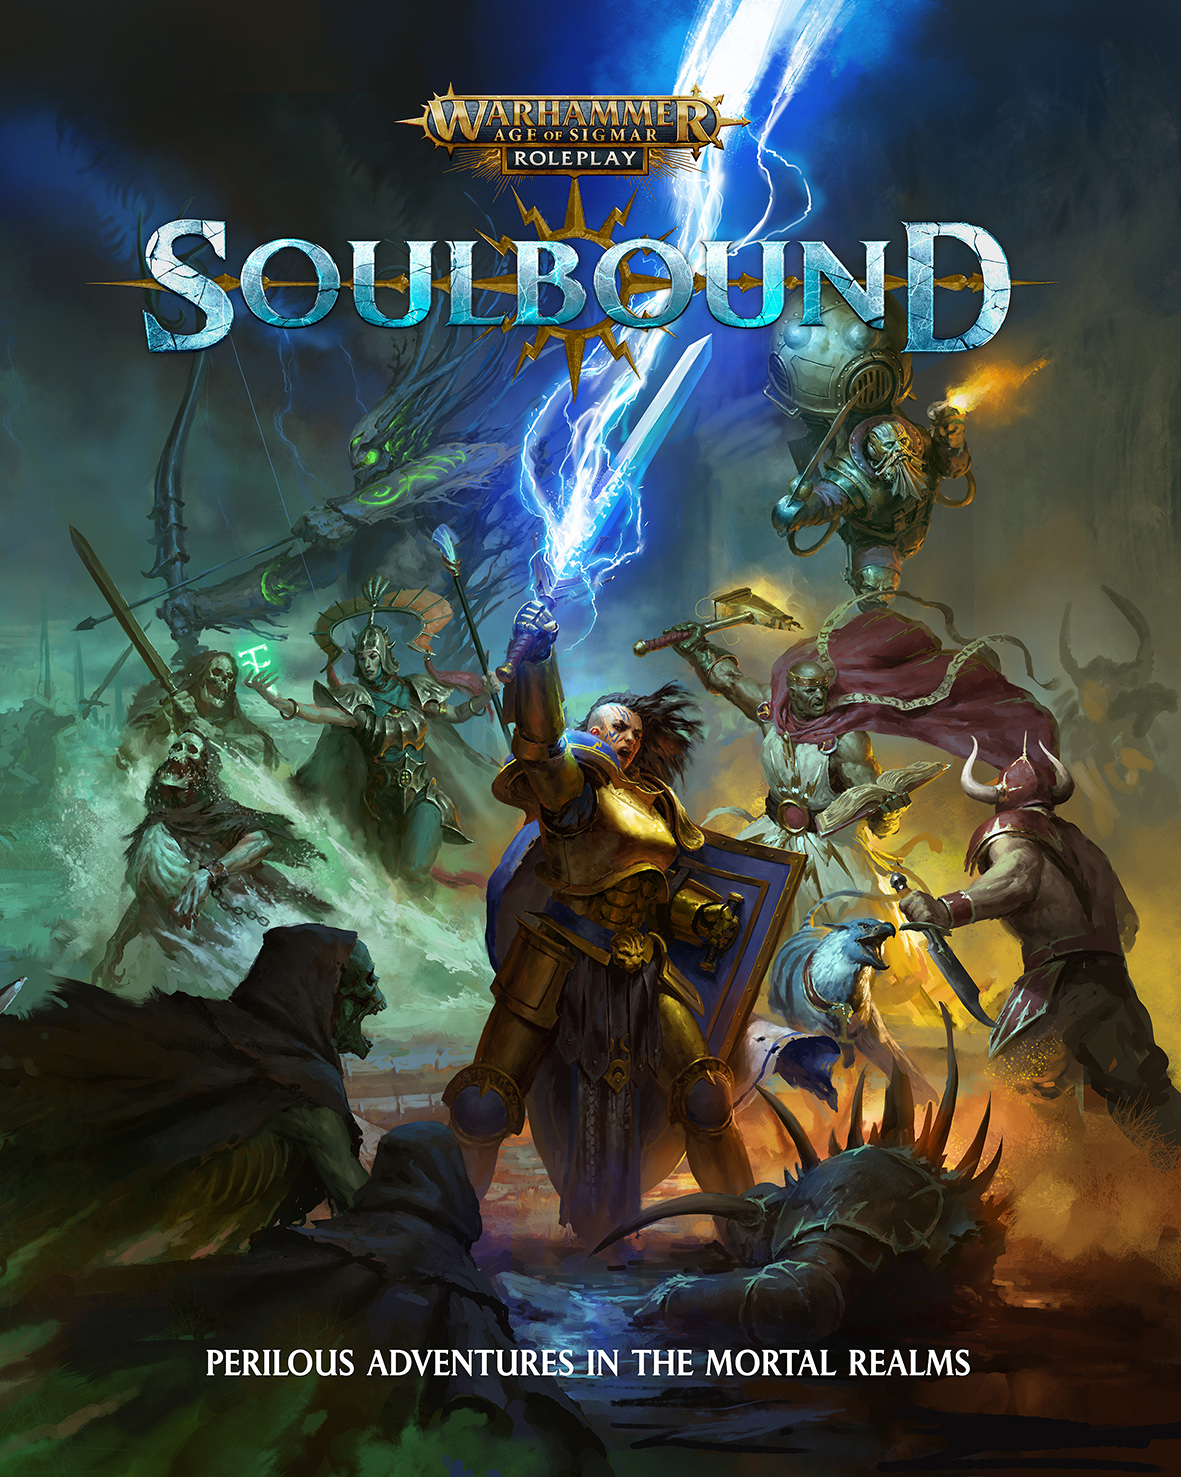 The soulbound cover page. A female warrior in armour holds a sword above her head as she calls lighting from it. Her allies: a flying dwarf pirate, a priest with a hammer, a treeman with a bow and an elven water sorcerer, help her fight off various undead and demonic enemies.